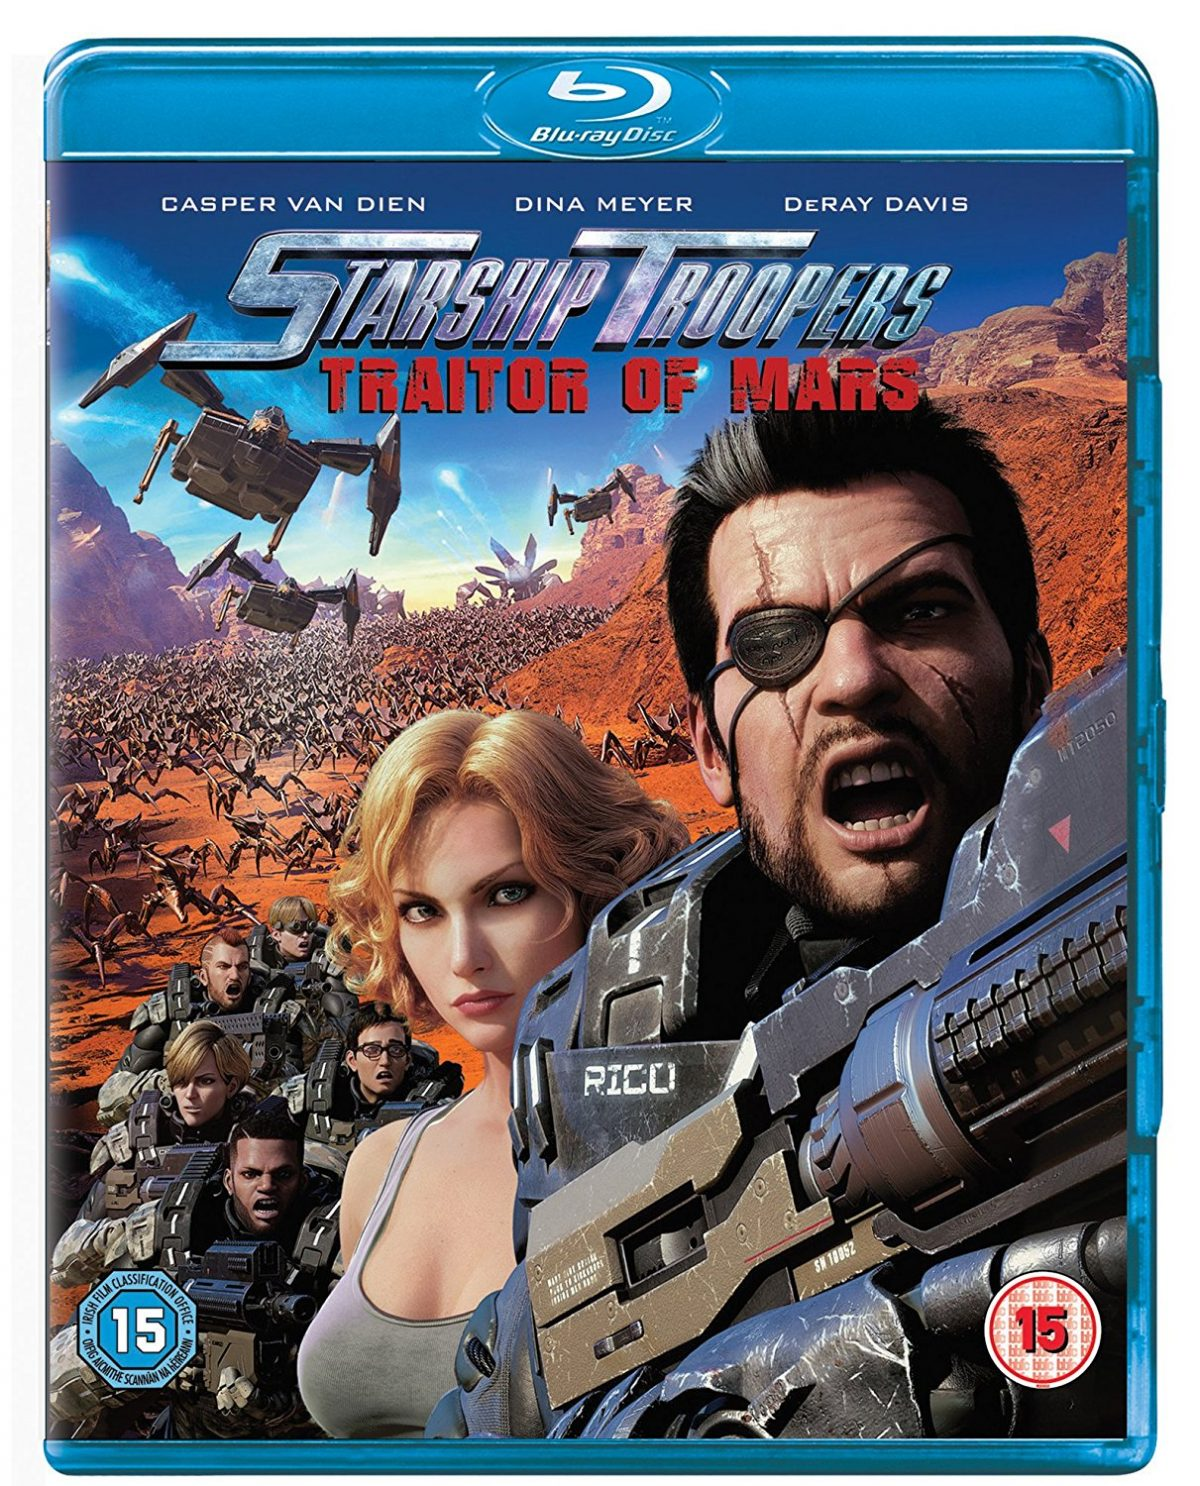 It's the fifth movie in the franchise and the second made in CGI. Casper Van Dien and Dina Meyer return in Starship Troopers: Traitors of Mars.